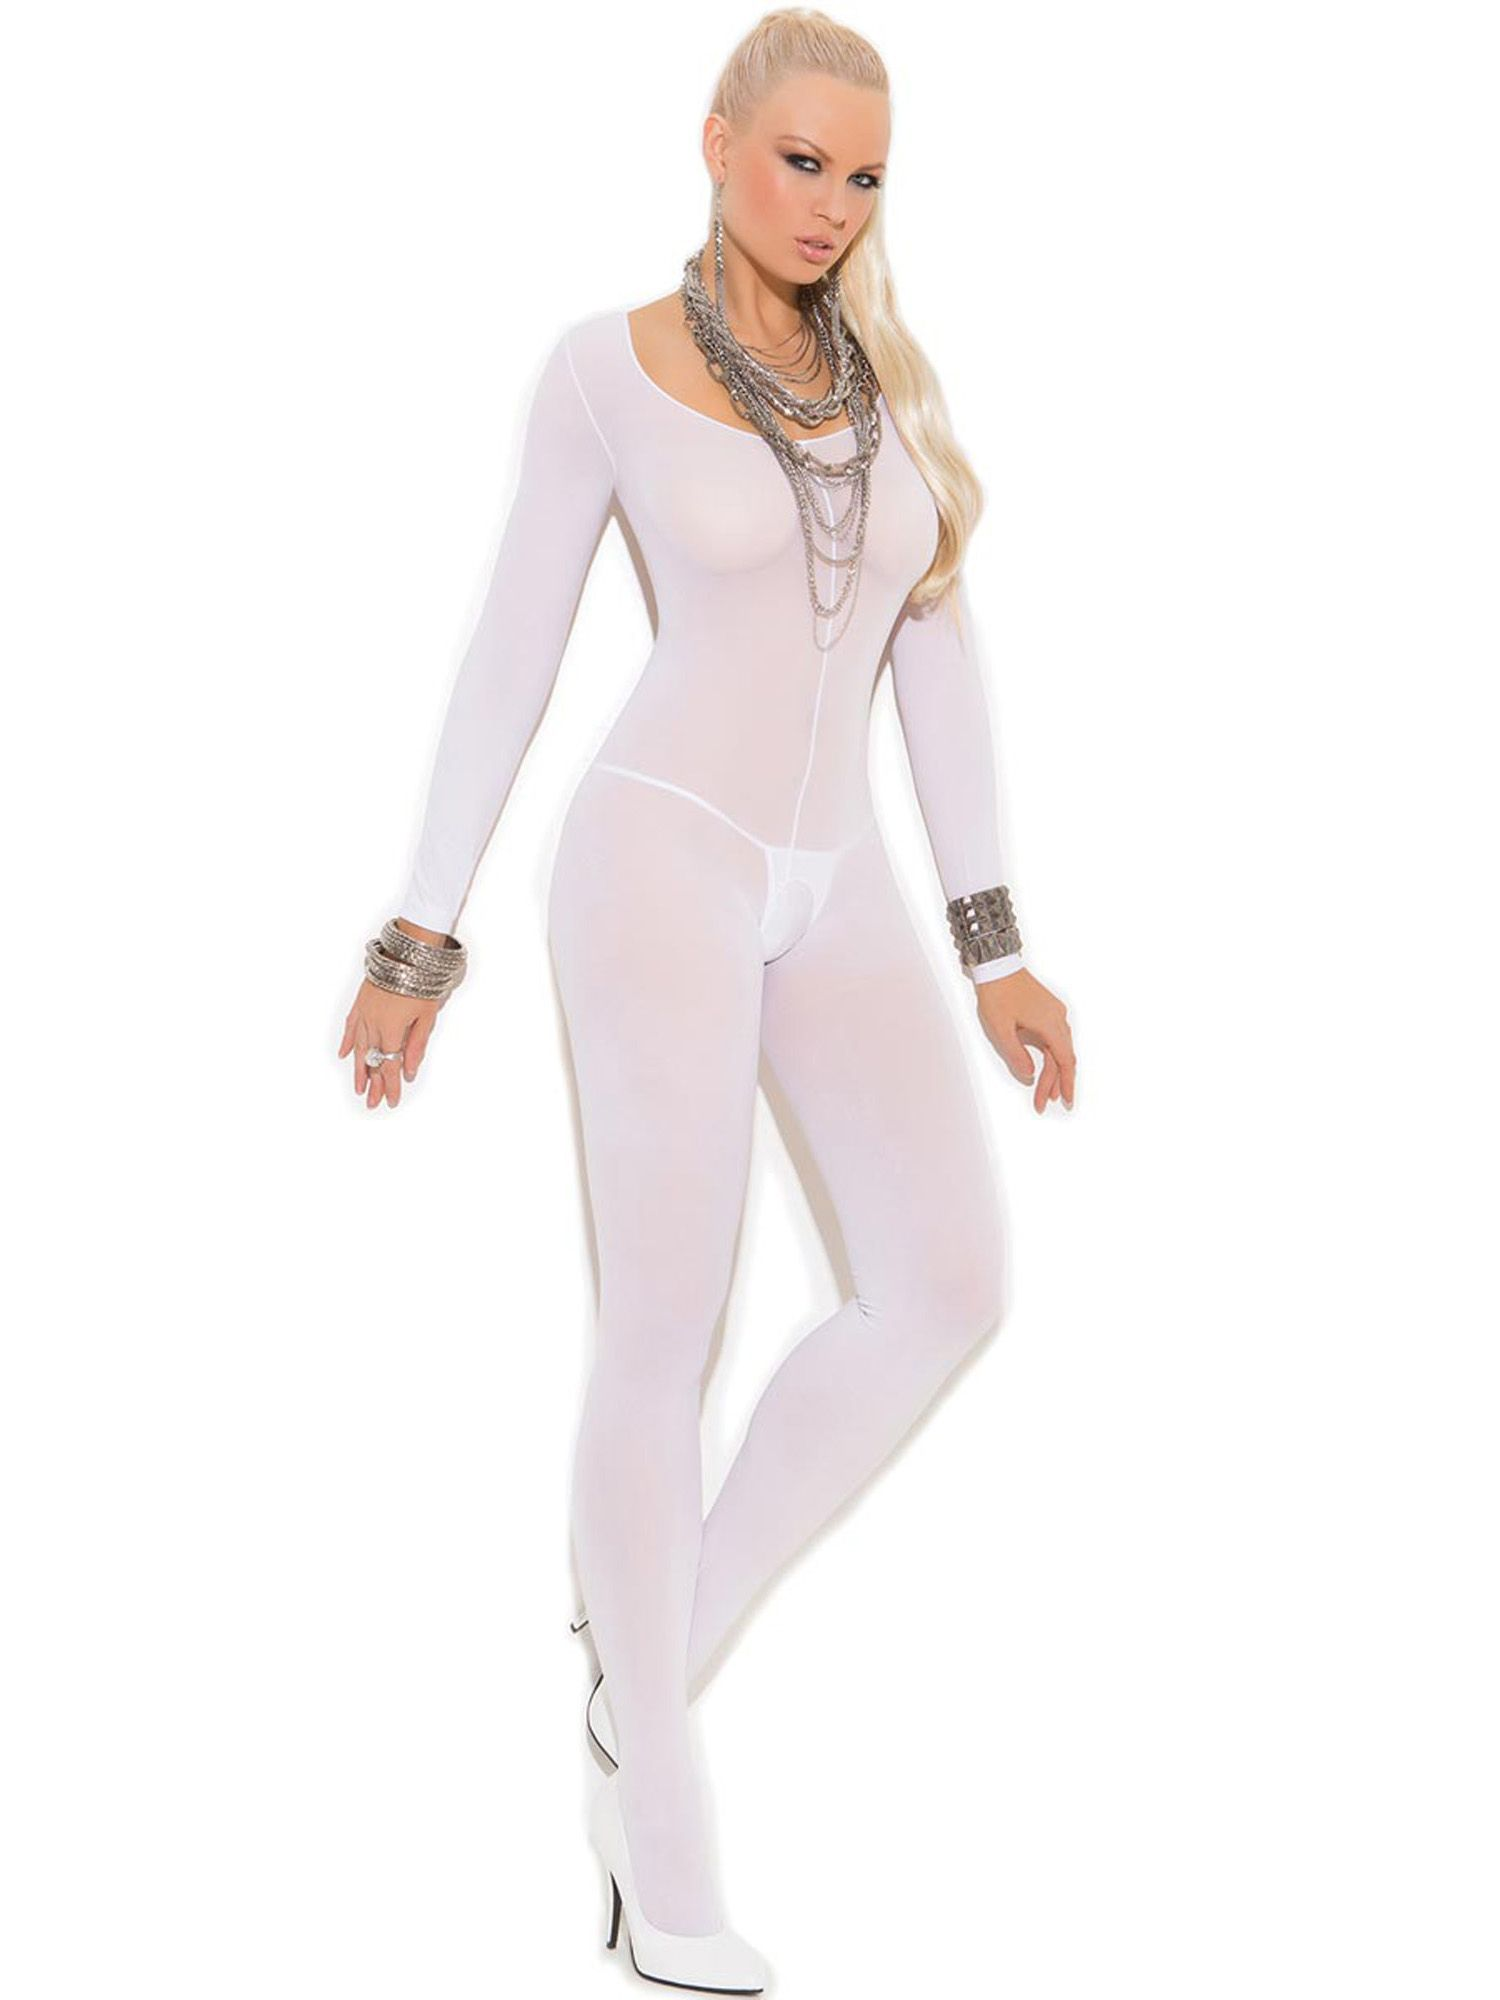 31f9f9af33 Womens Plus Size Full Figure Opaque Long Sleeve Open Crotch Bodystocking  Hosiery#Figure#Opaque#Full